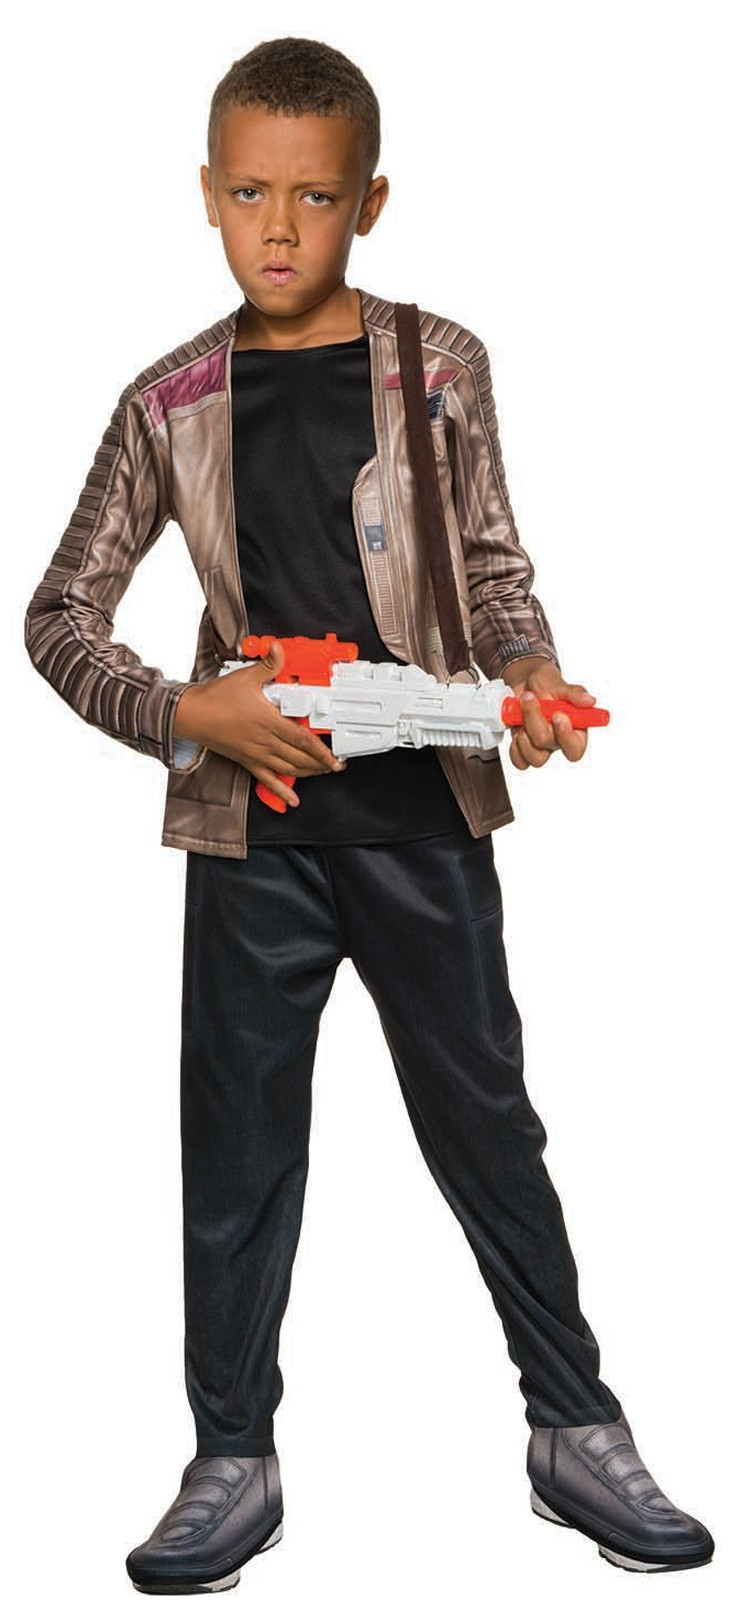 call of duty halloween costumes for kids the halloween costumes star wars episode 7 the force awakens deluxe finn child costume